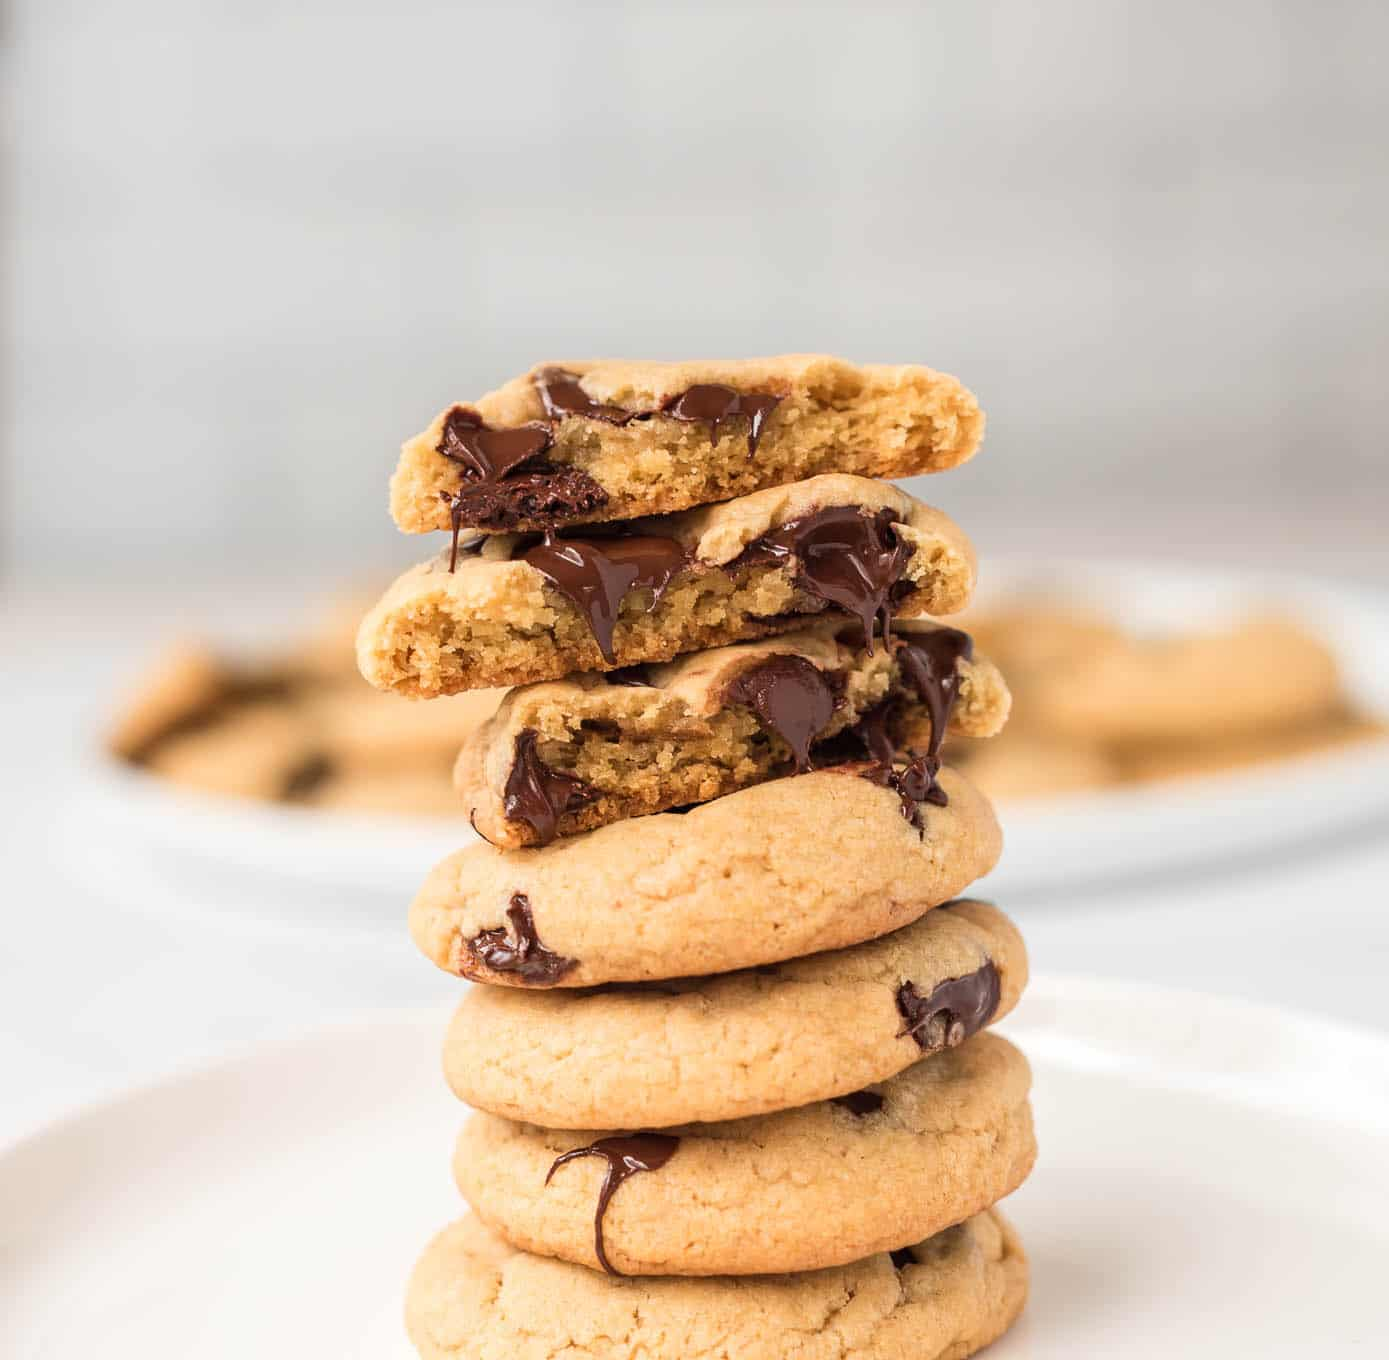 vegan chocolate chip cookies stacked with the top cookie split in half to show melted chocolate